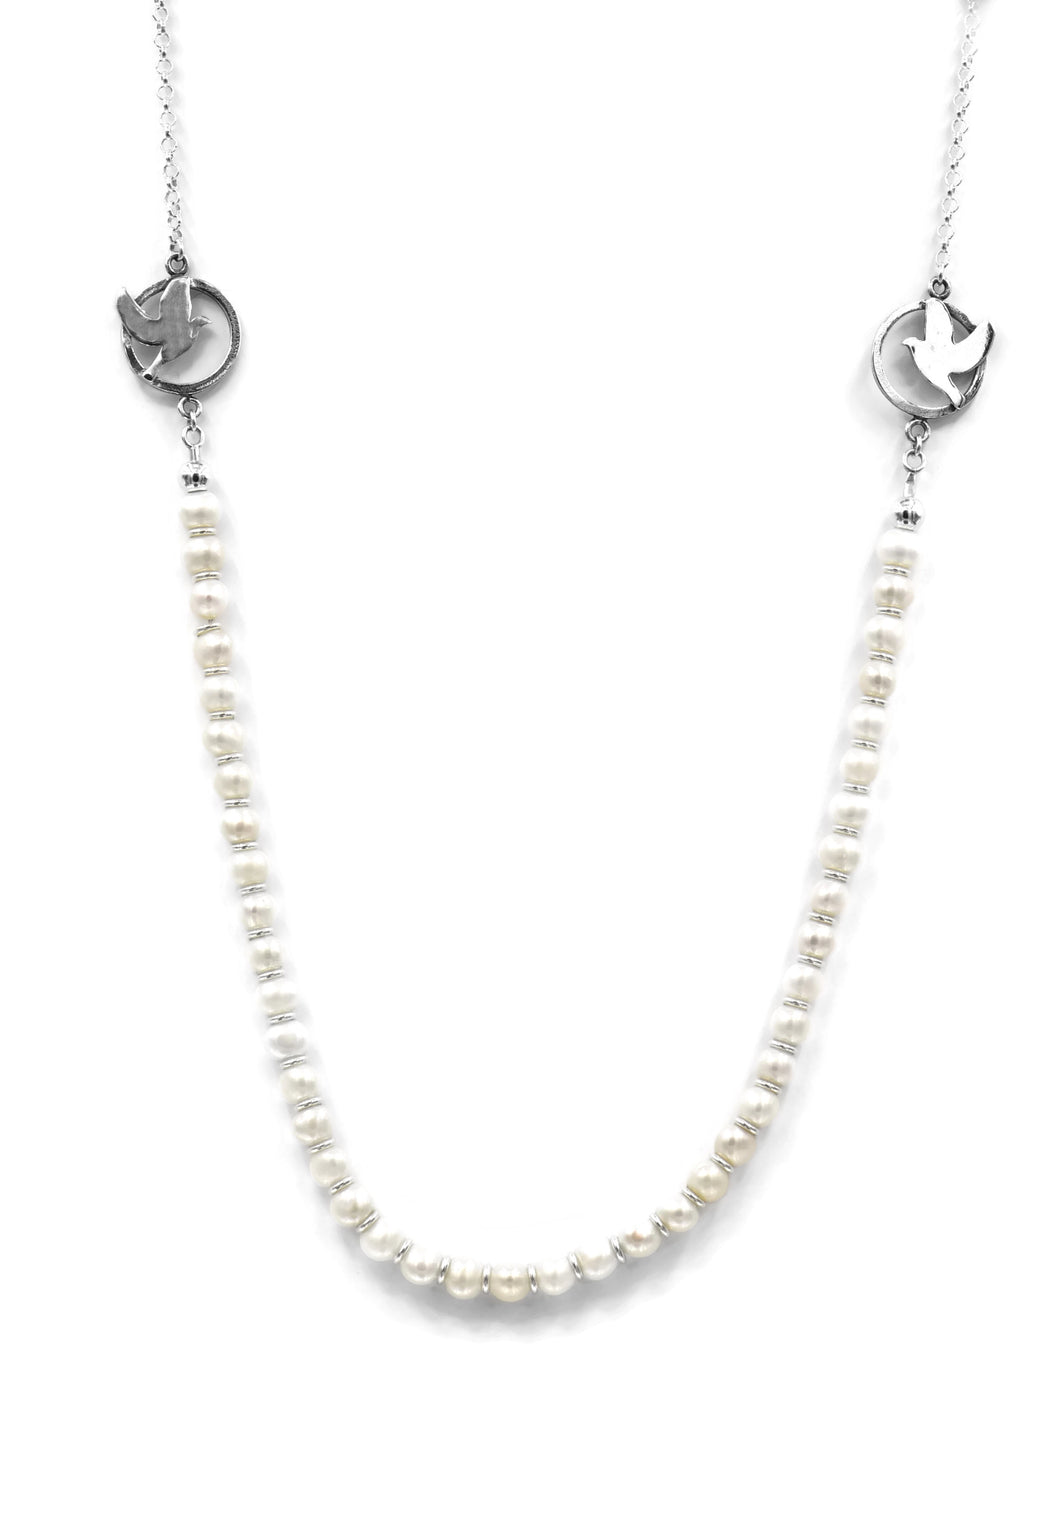 Sterling Silver Necklace With Pearls And Doves